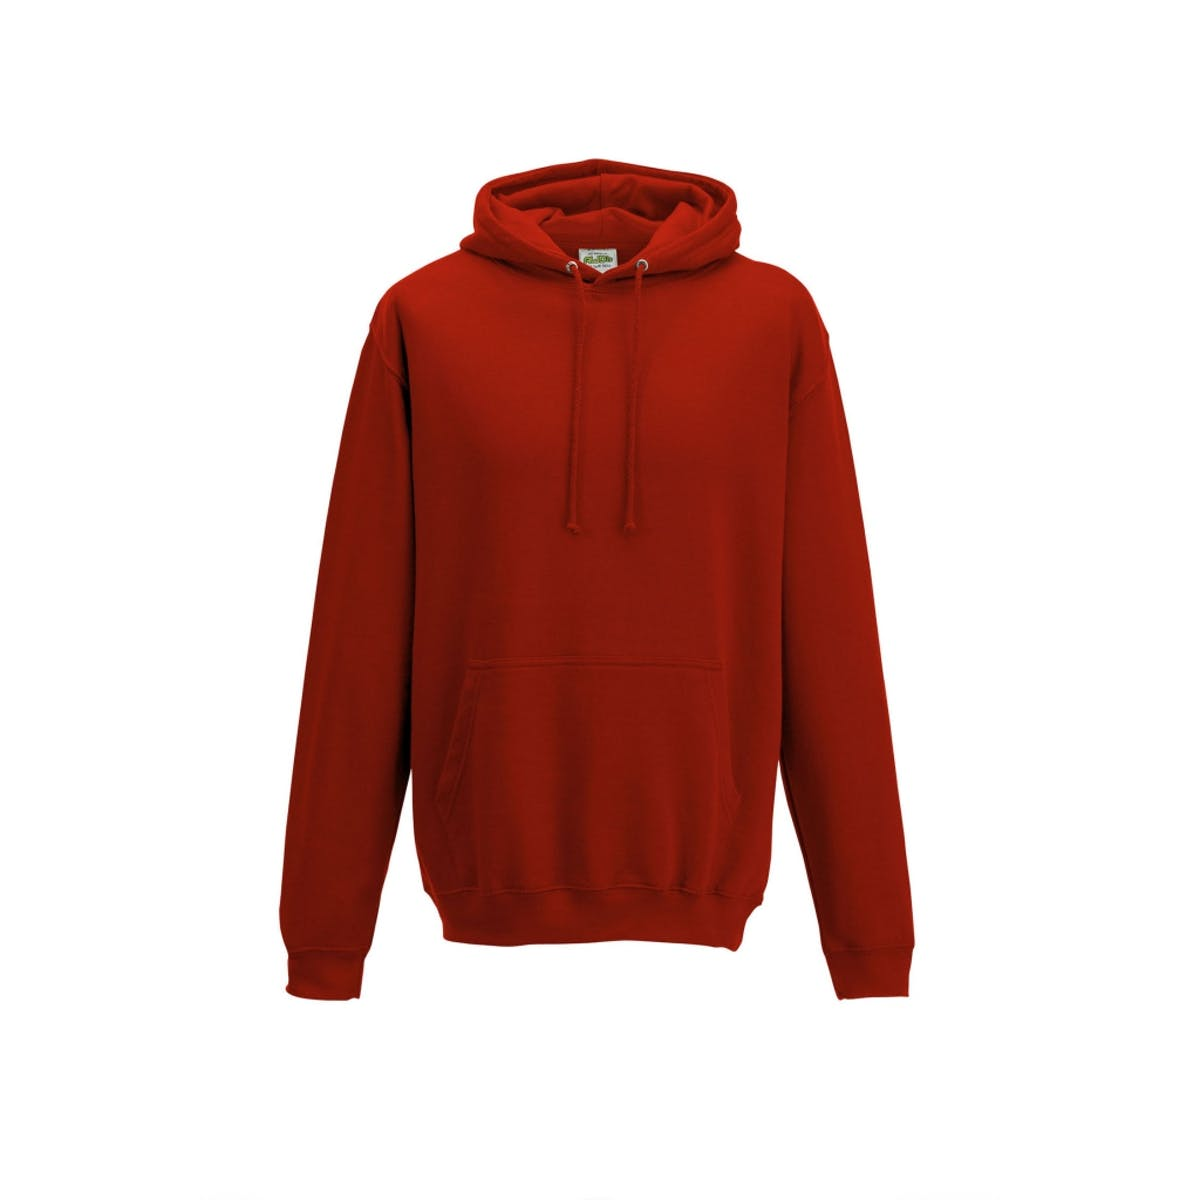 fire red college hoodies